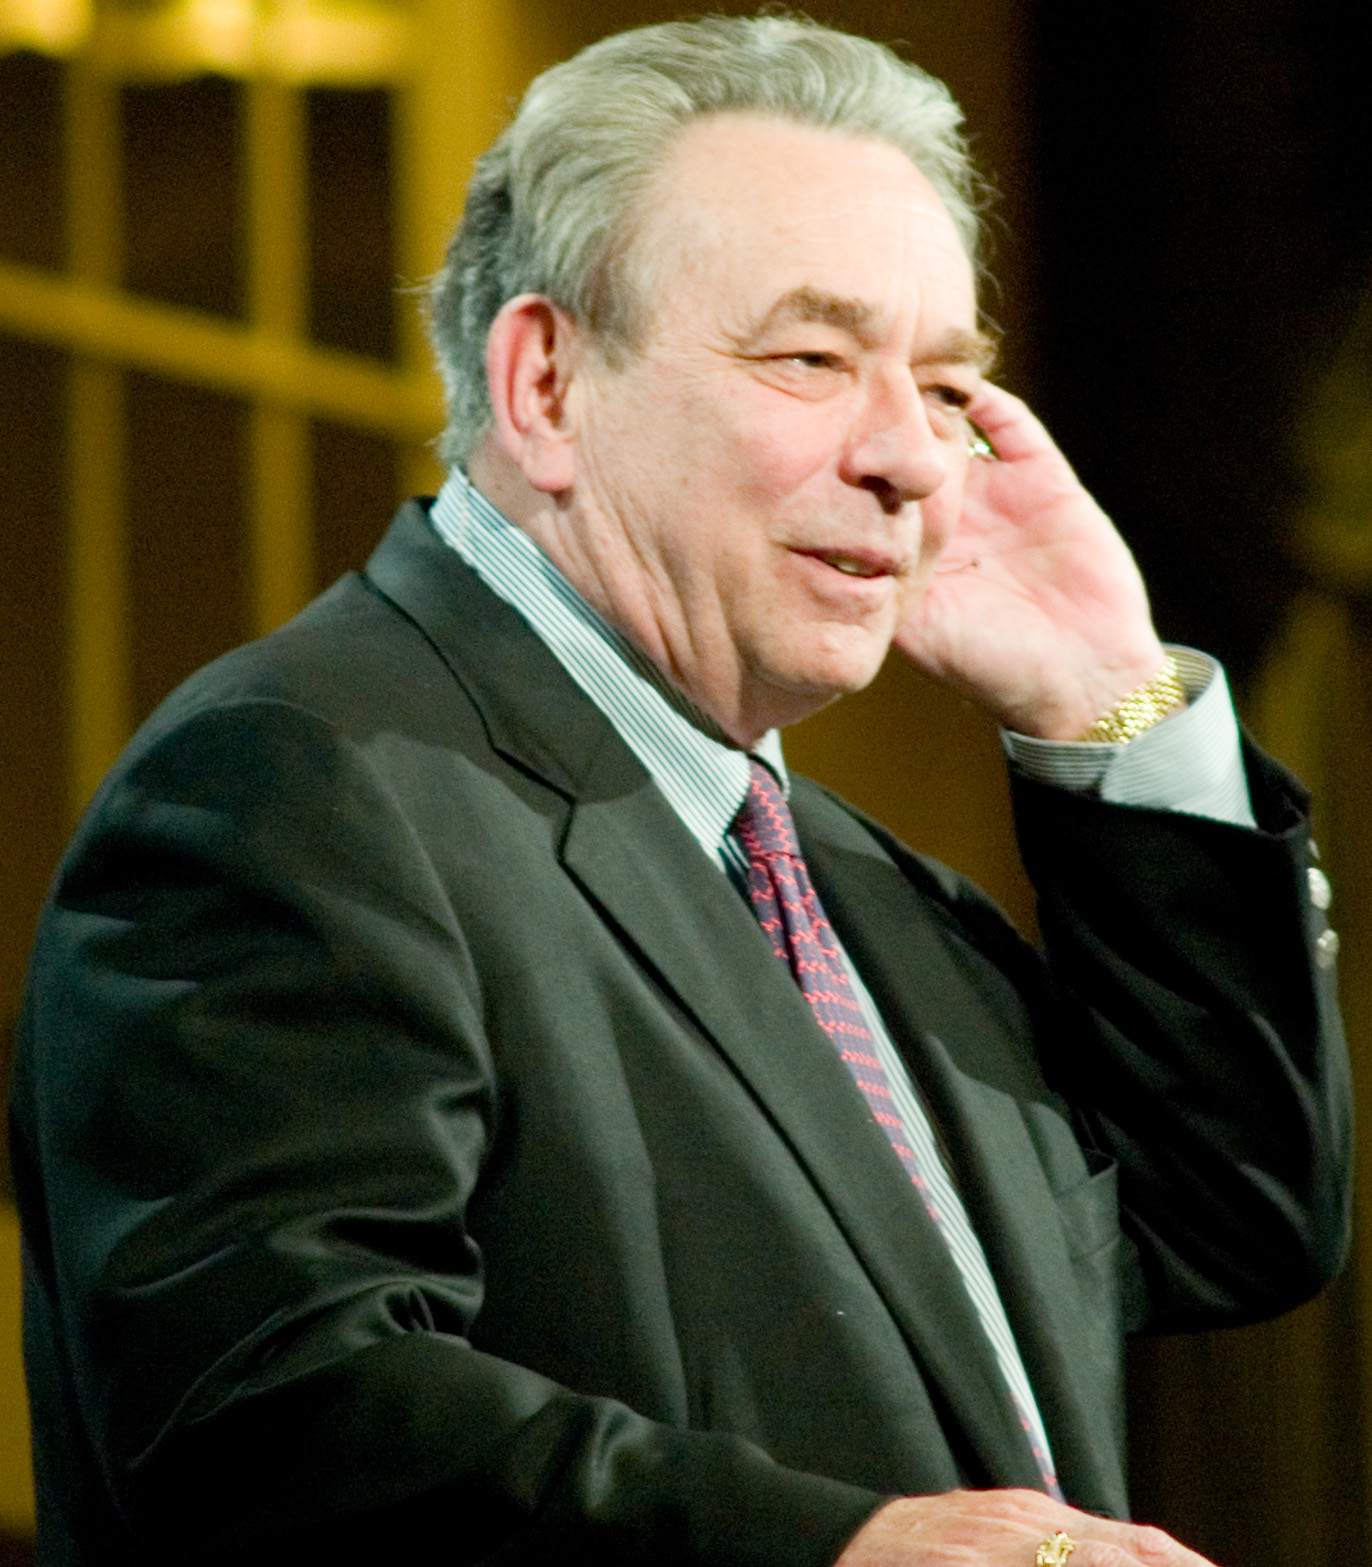 File:R. C. Sproul.jpg - Wikimedia Commons